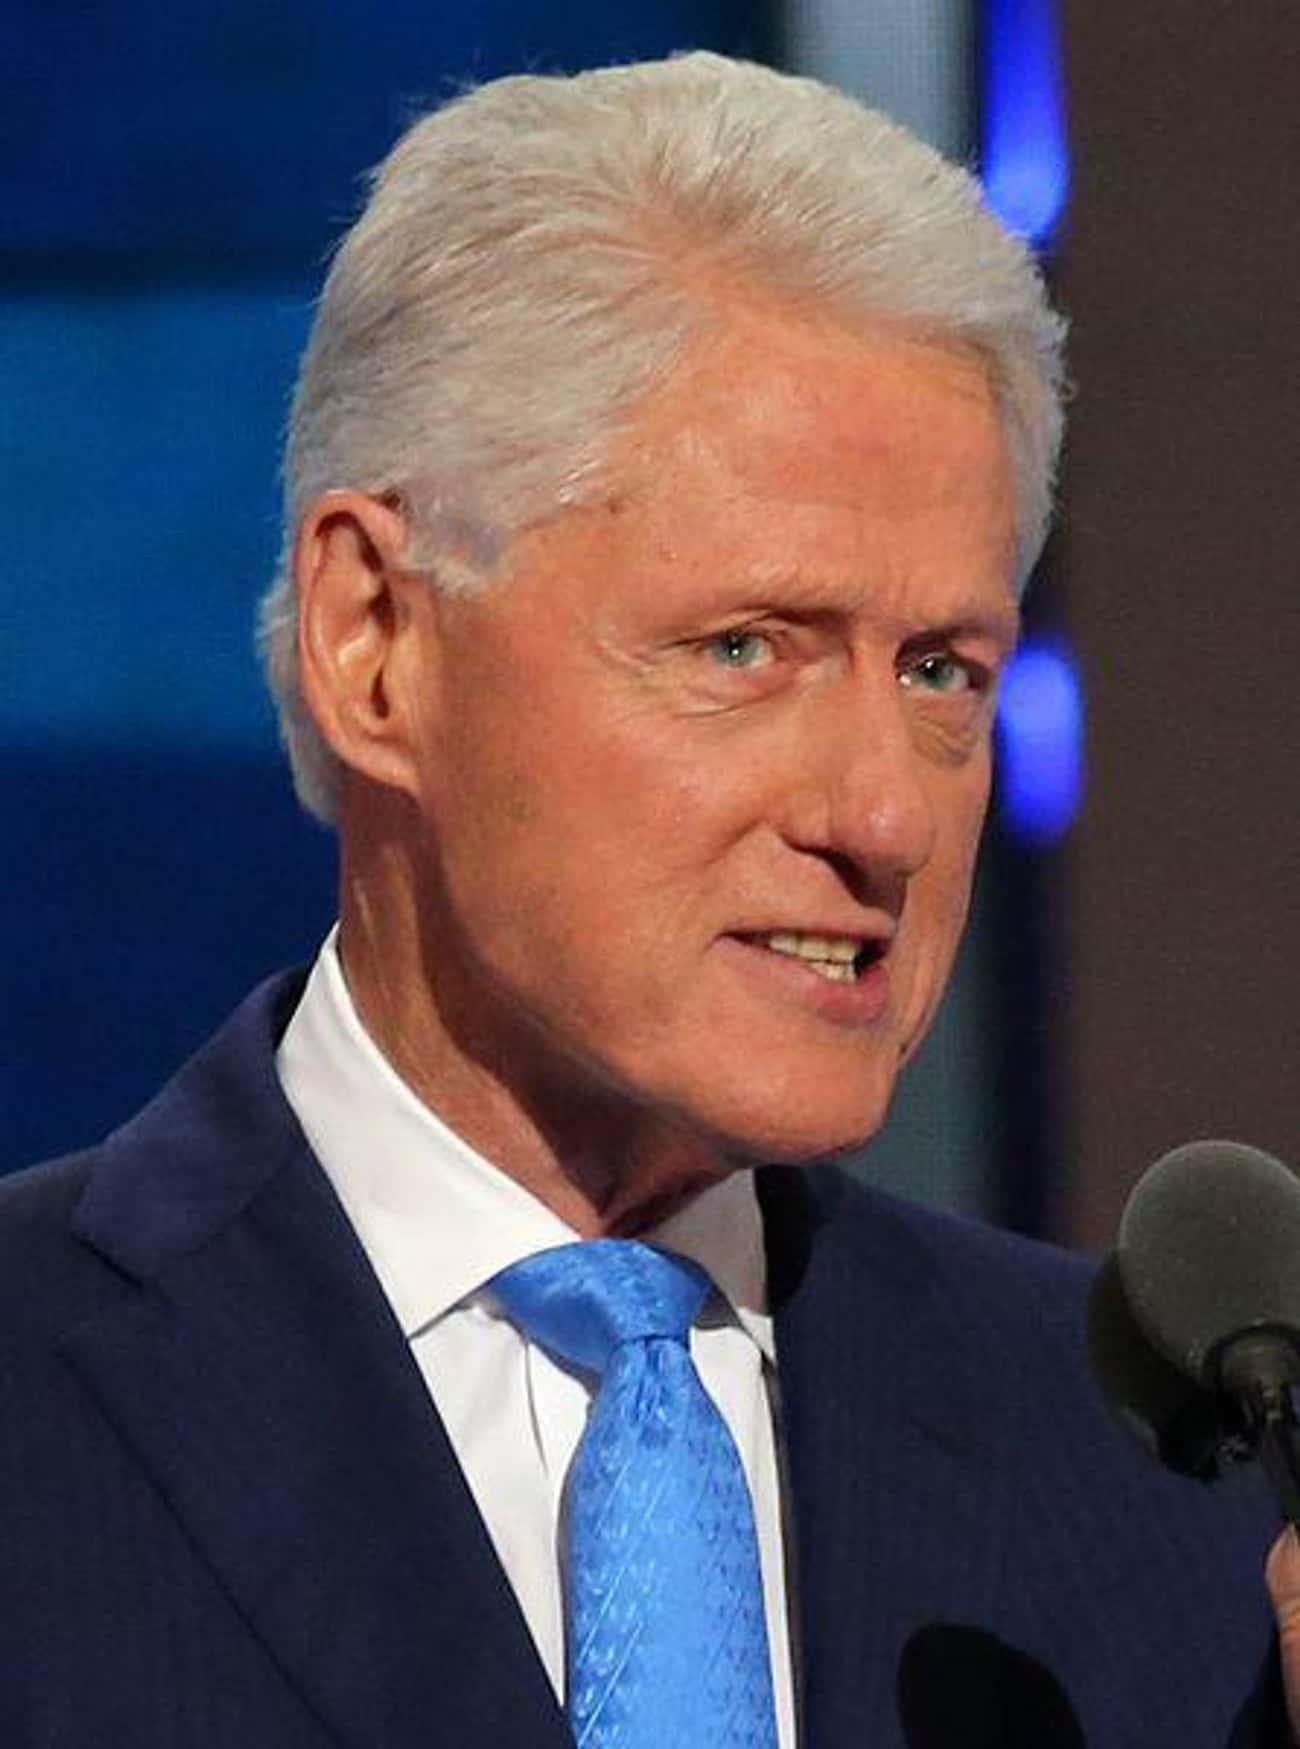 Bill Clinton on an Old Truck is listed (or ranked) 1 on the list Funny Bill Clinton Quotes